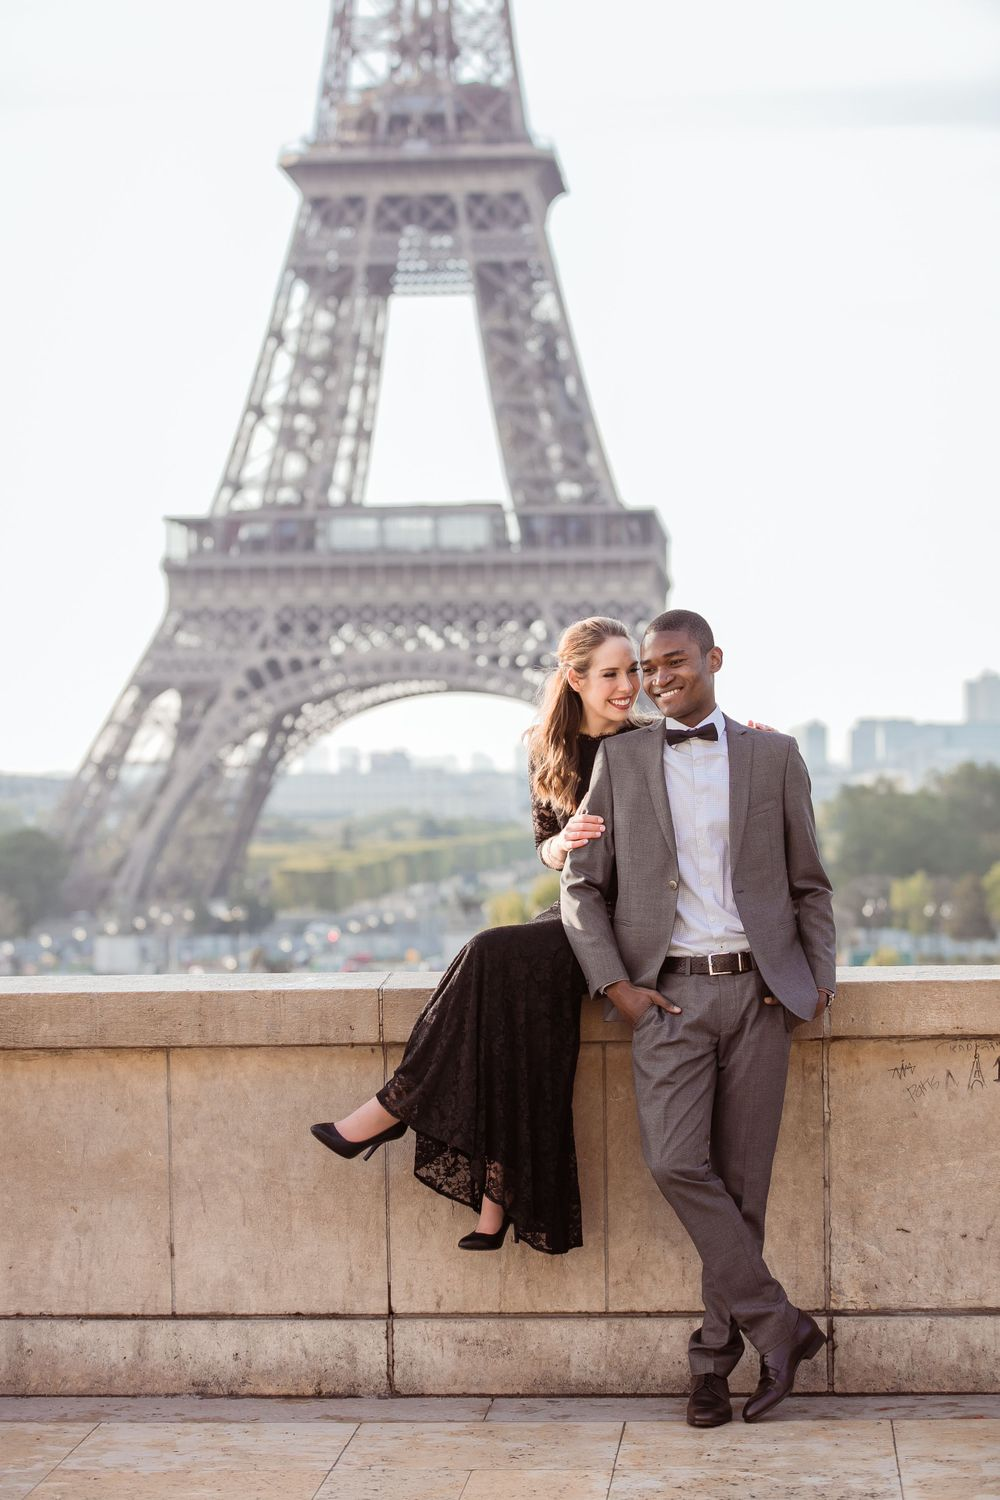 Portrait Session in front of the Eiffel Tower